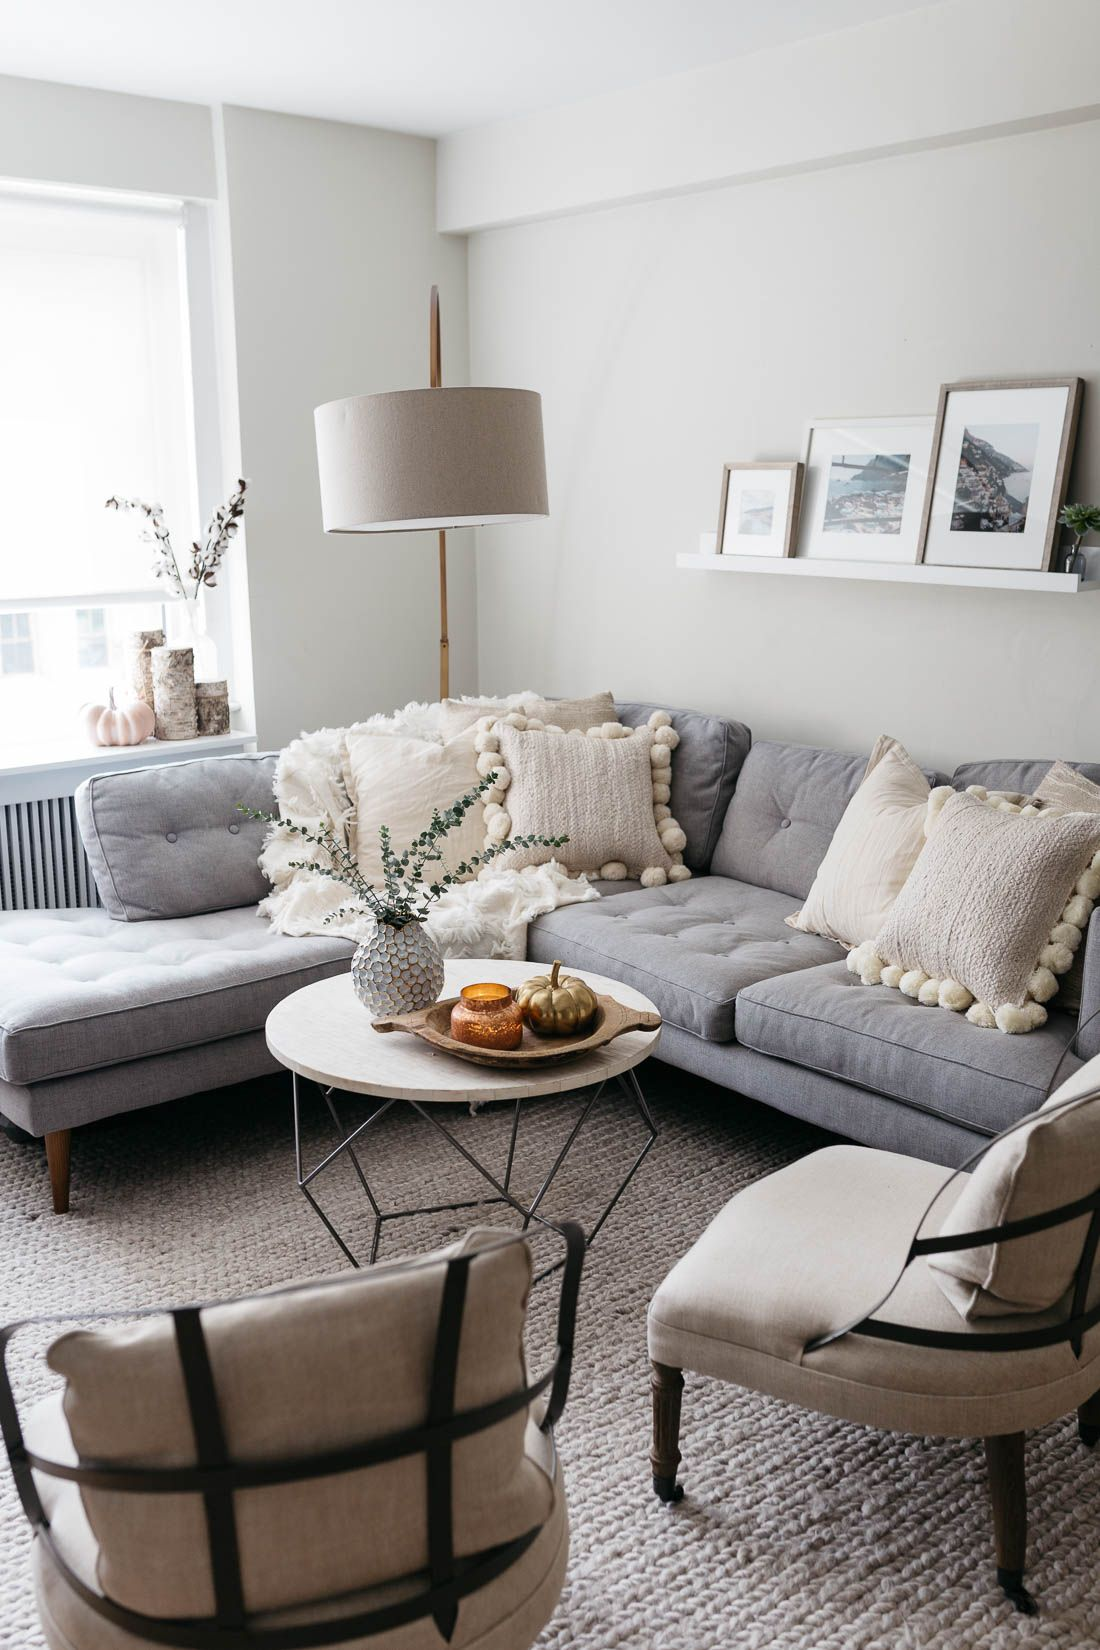 Nordstrom X Anthropologie Home Apartment Couch Living Room Decor Apartment Apartment Living Room